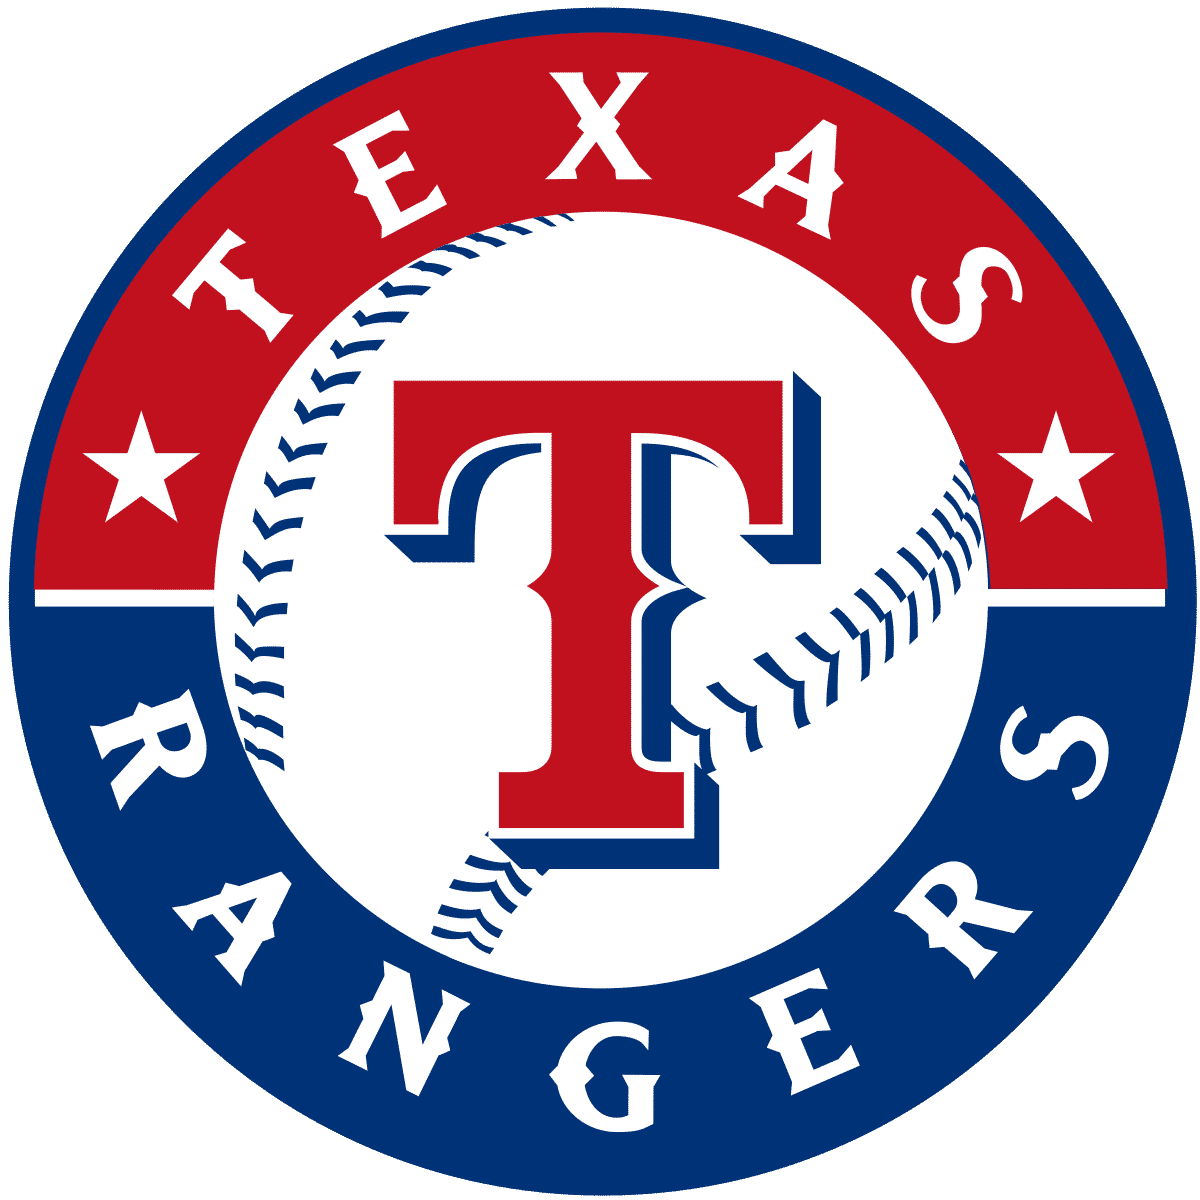 Brian Nephew, Manager of Corporate Partnerships, Texas Rangers